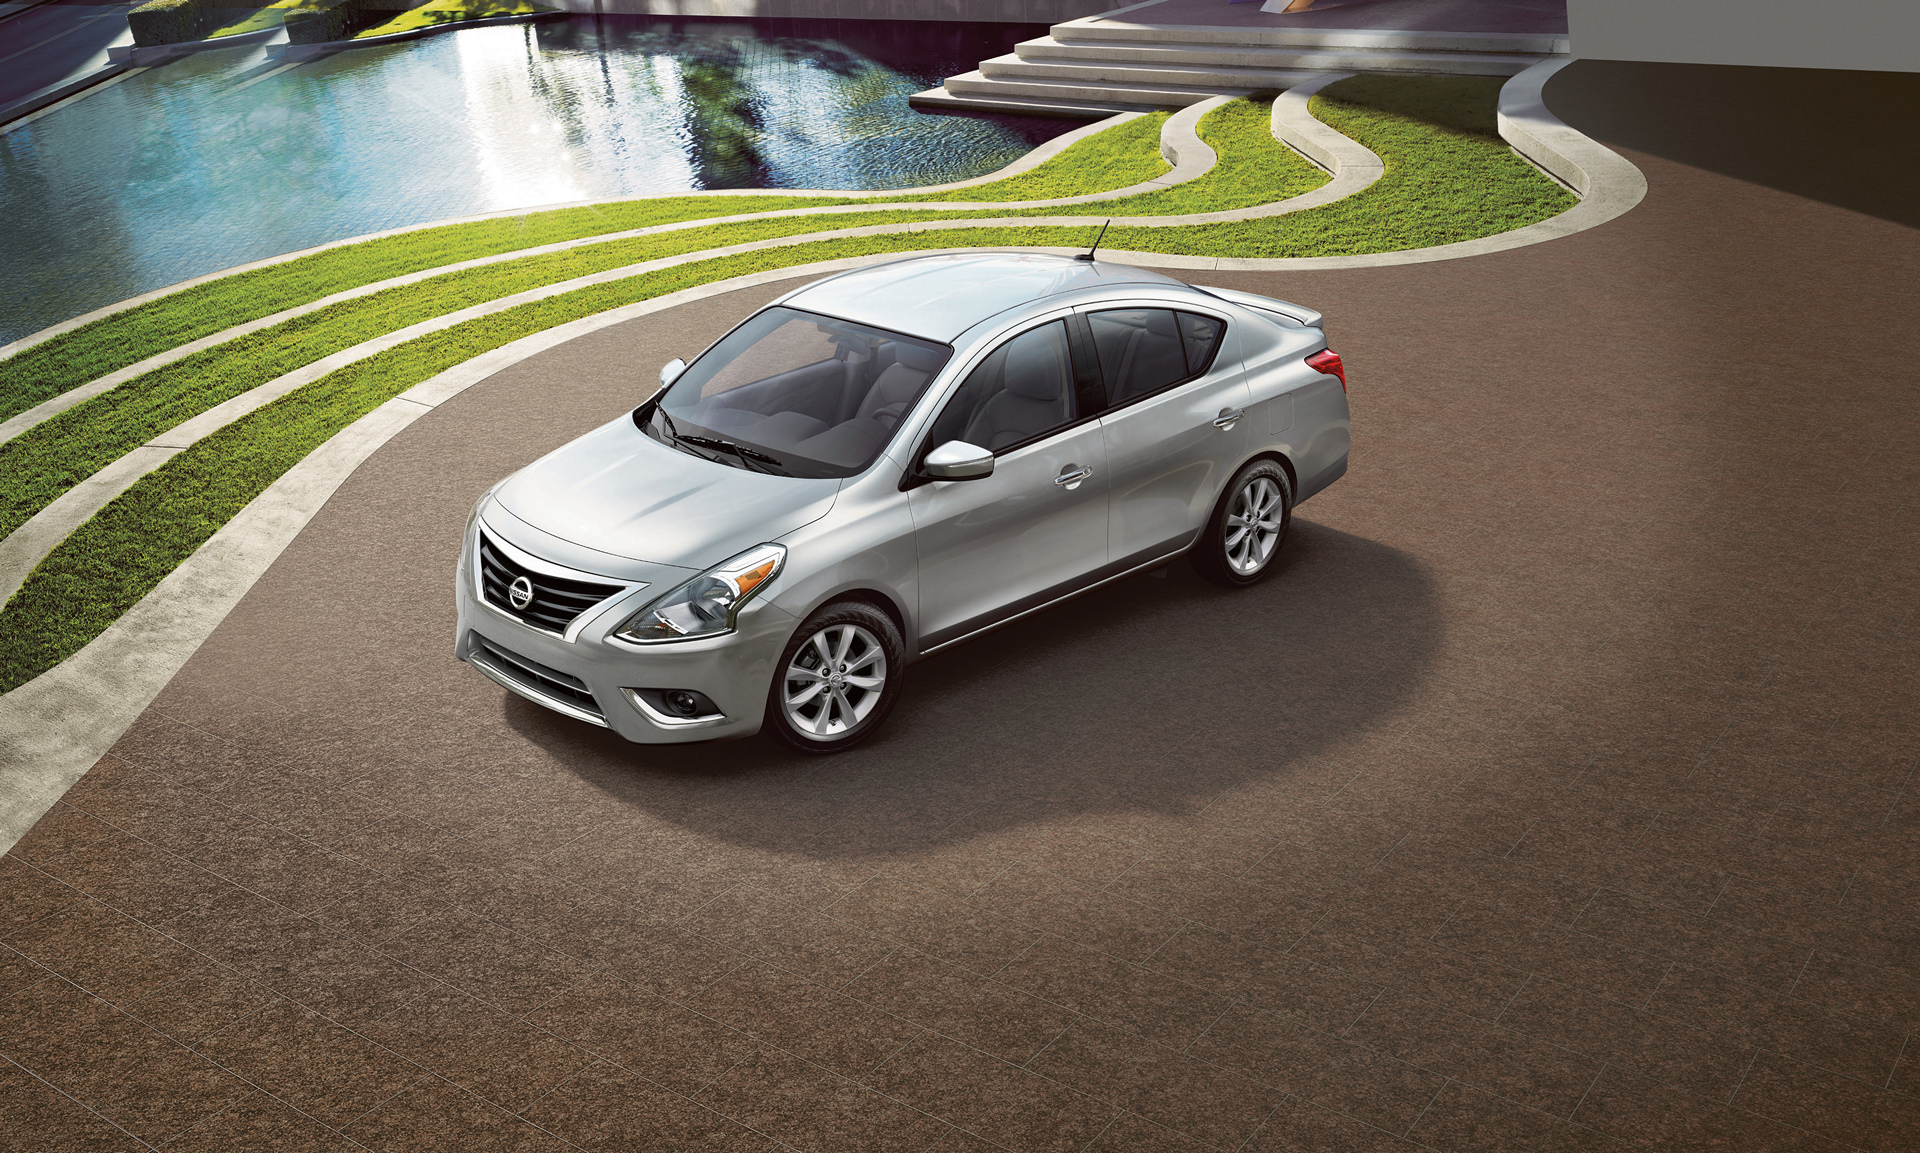 2016 Nissan Versa Sedan © Nissan Motor Co., Ltd.